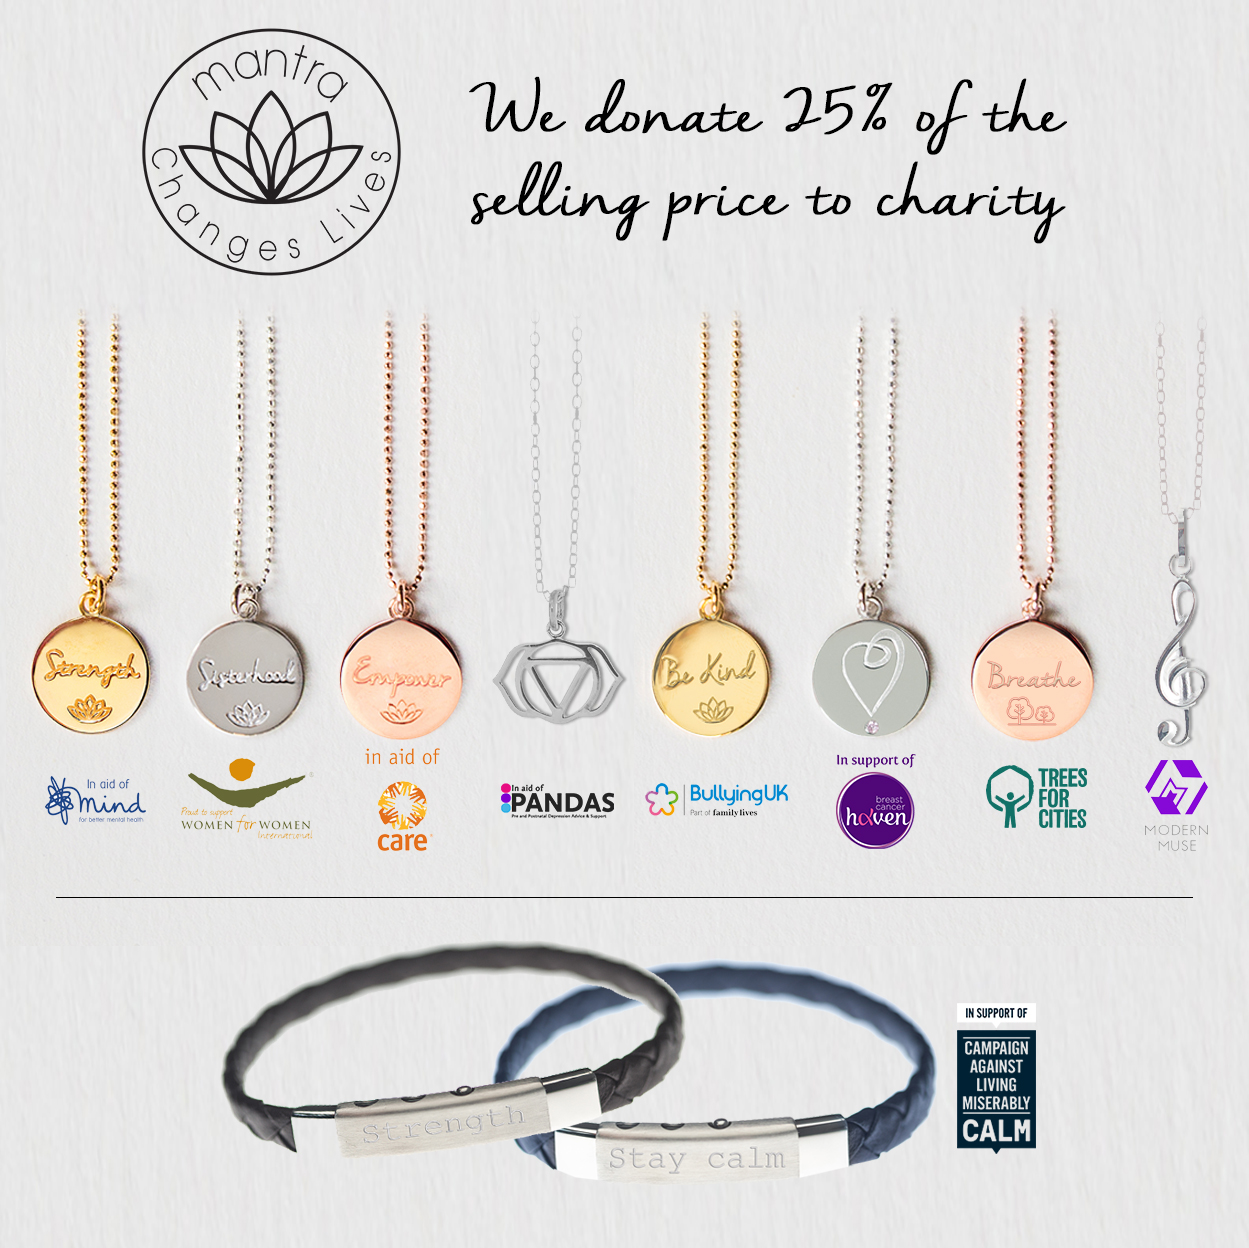 Shop with purpose - Mantra Charity necklaces